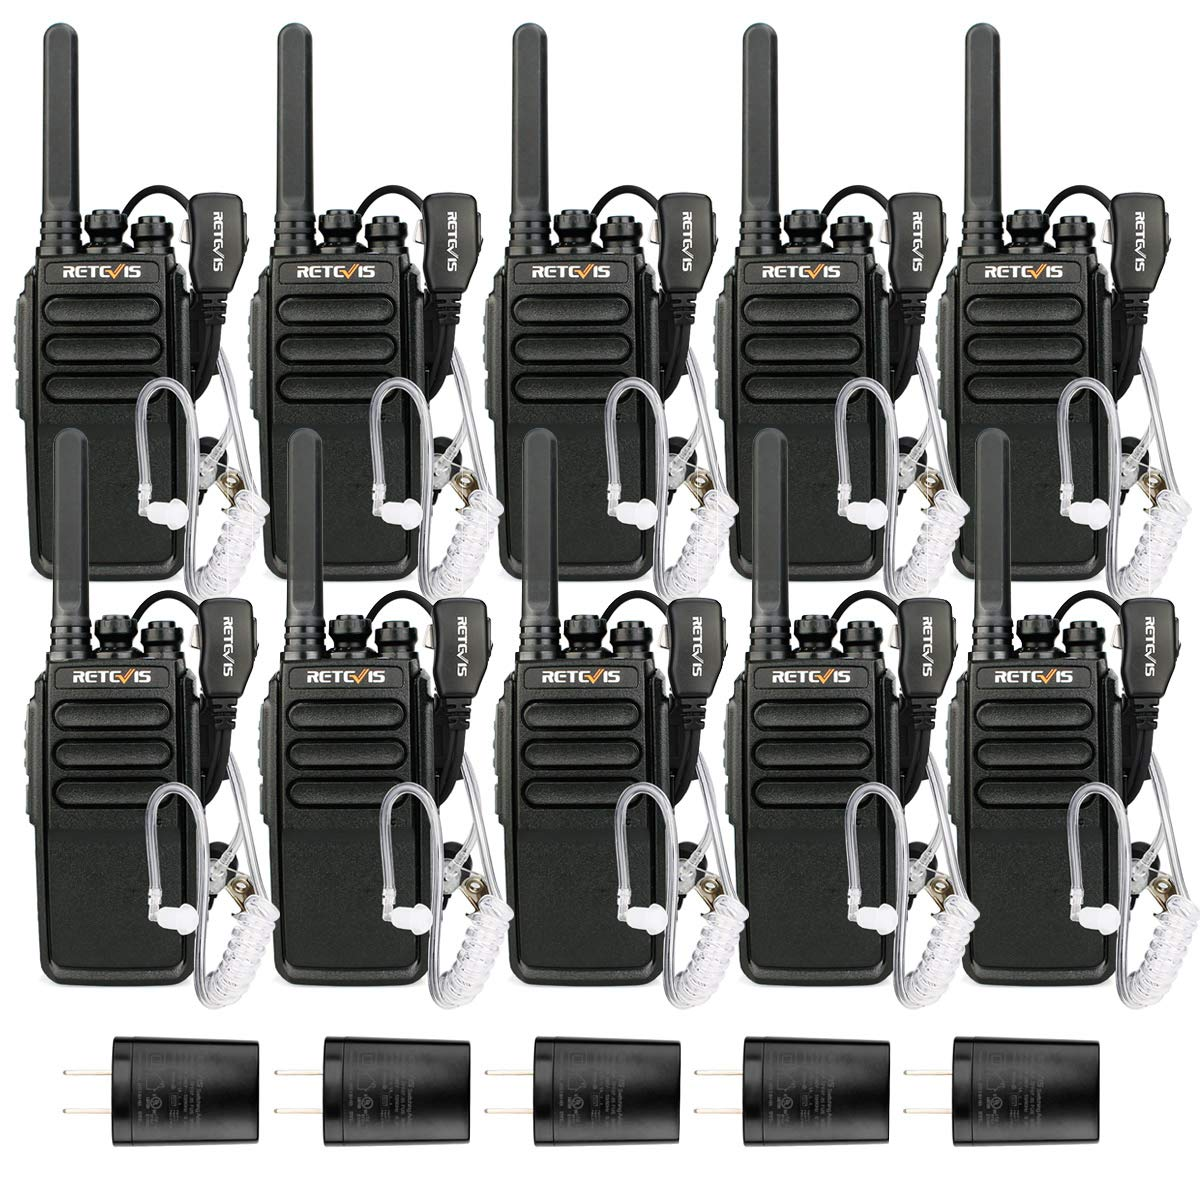 Retevis RT28 Walkie-Talkies Adults with Headsets Two-Way Radios Long Range Rechargeable FRS EmergencyAlarm VOX Hands 2 Way Radios with Earpieces Business Commercial (10 Pack)